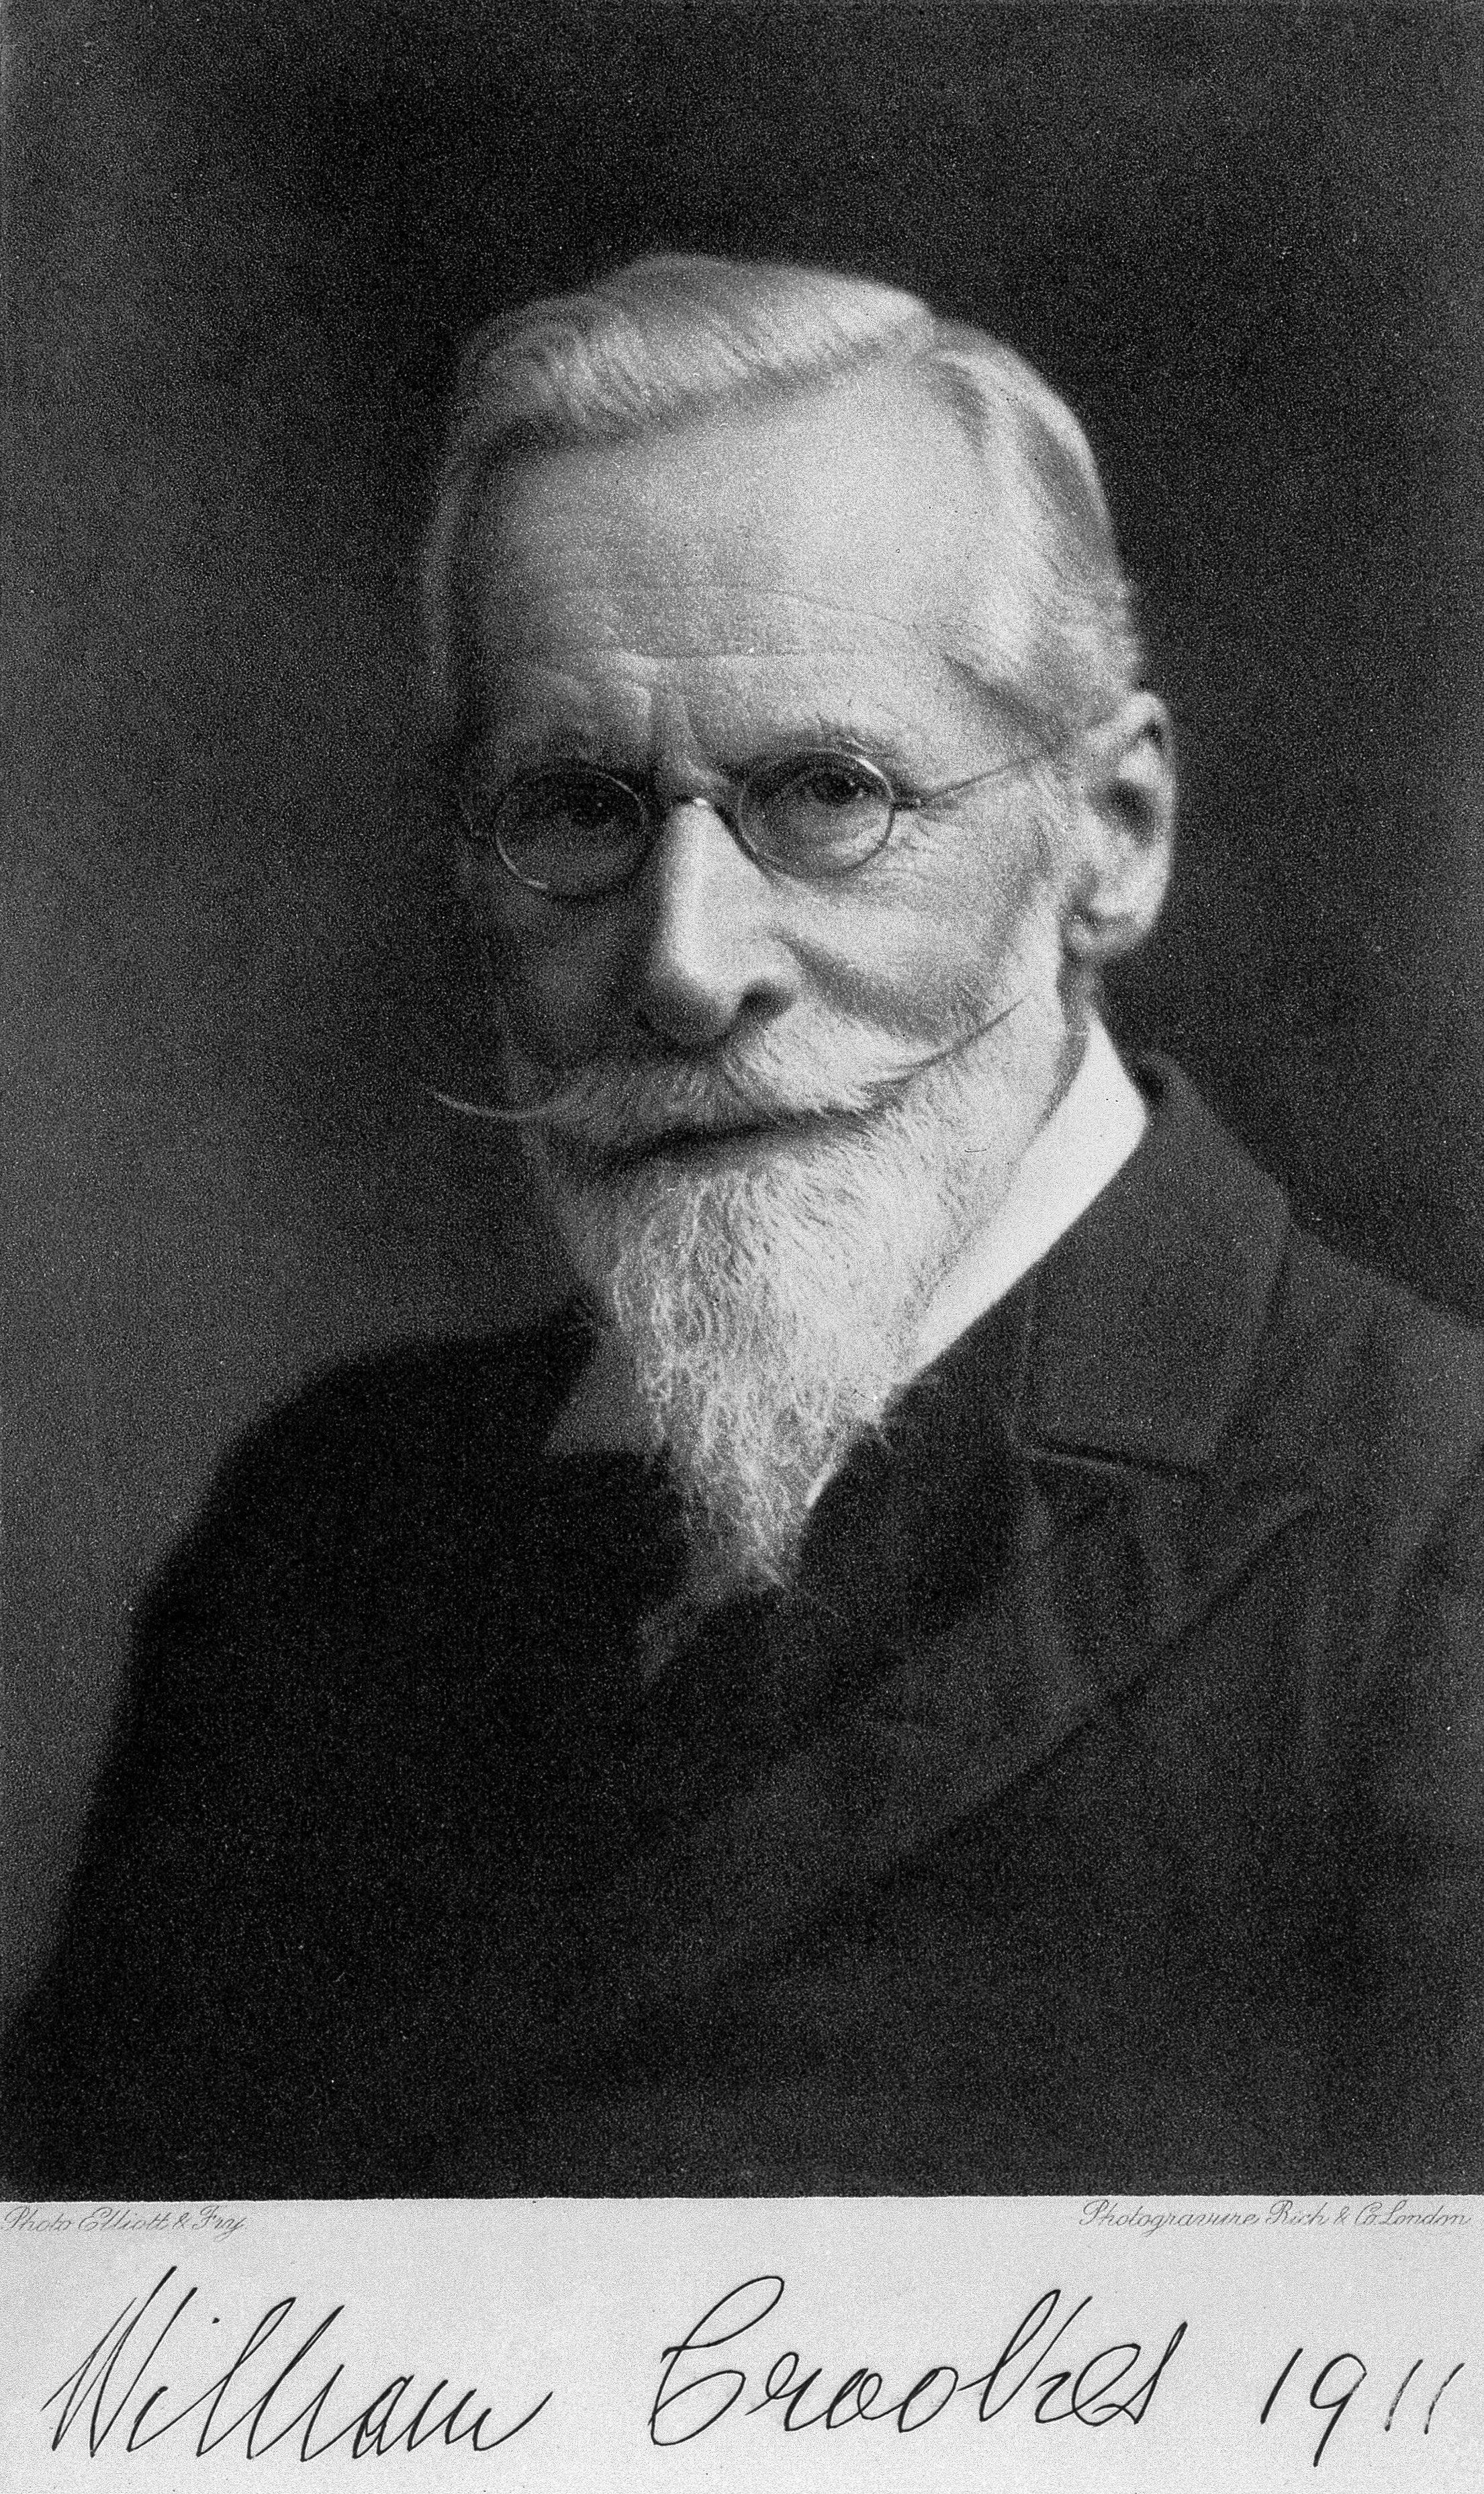 sir william crookes English chemist sir william crookes (1832 – 1919) invented the crookes tube to study gases, which fascinated him.